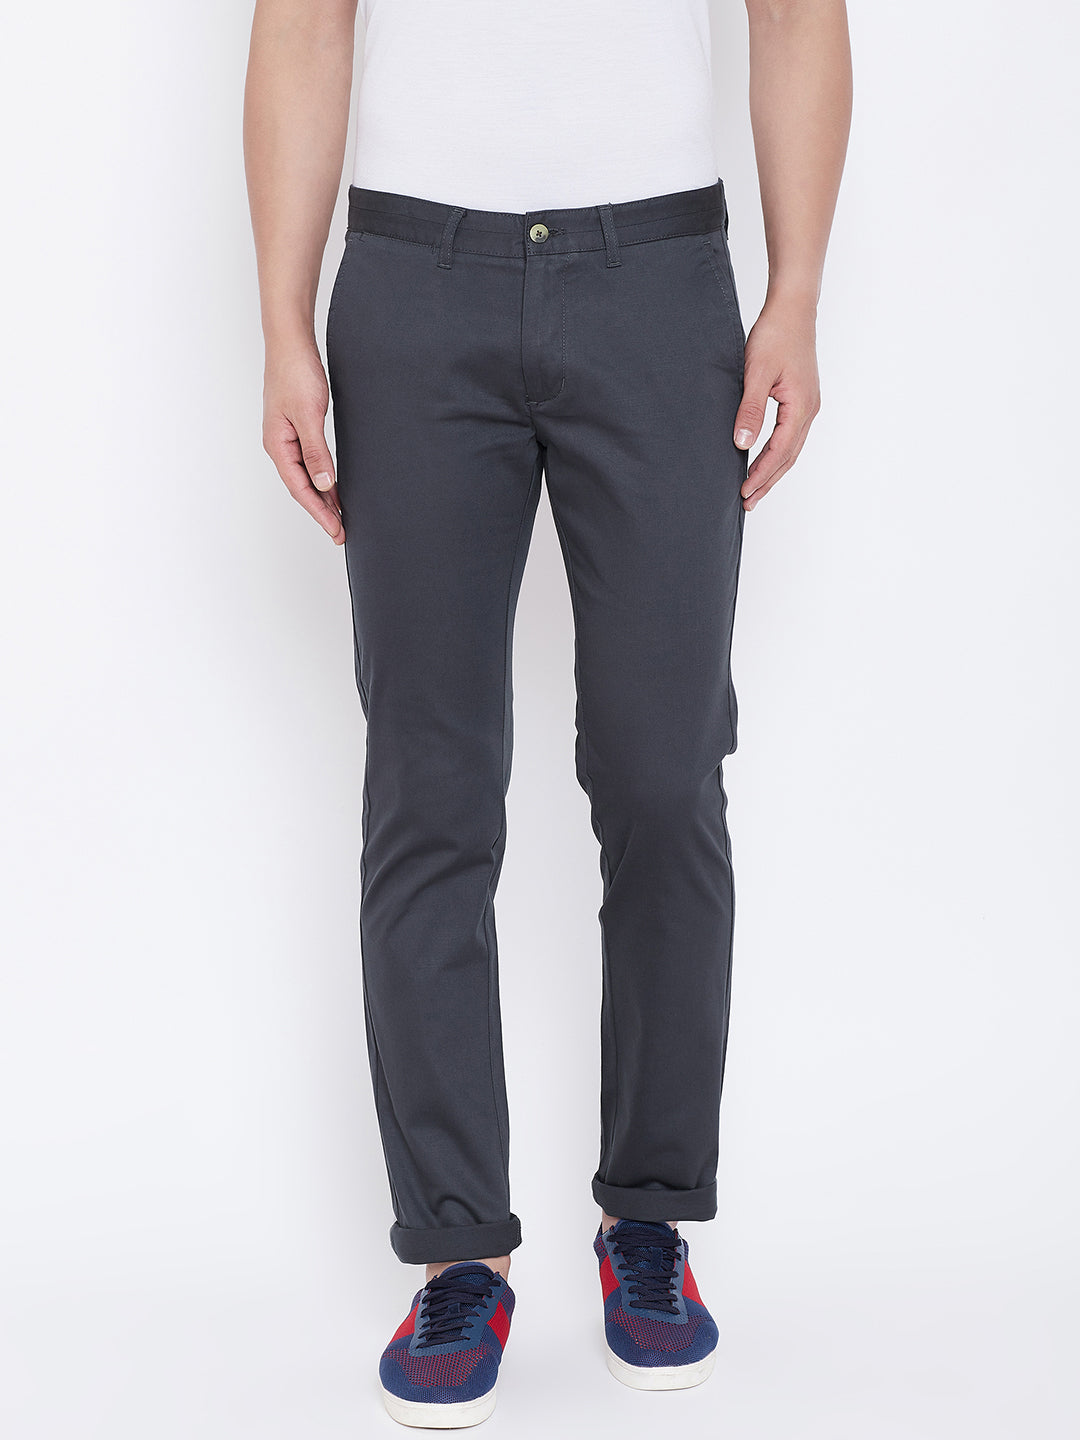 JUMP USA Men Charcoal Regular Fit Solid Trousers - JUMP USA